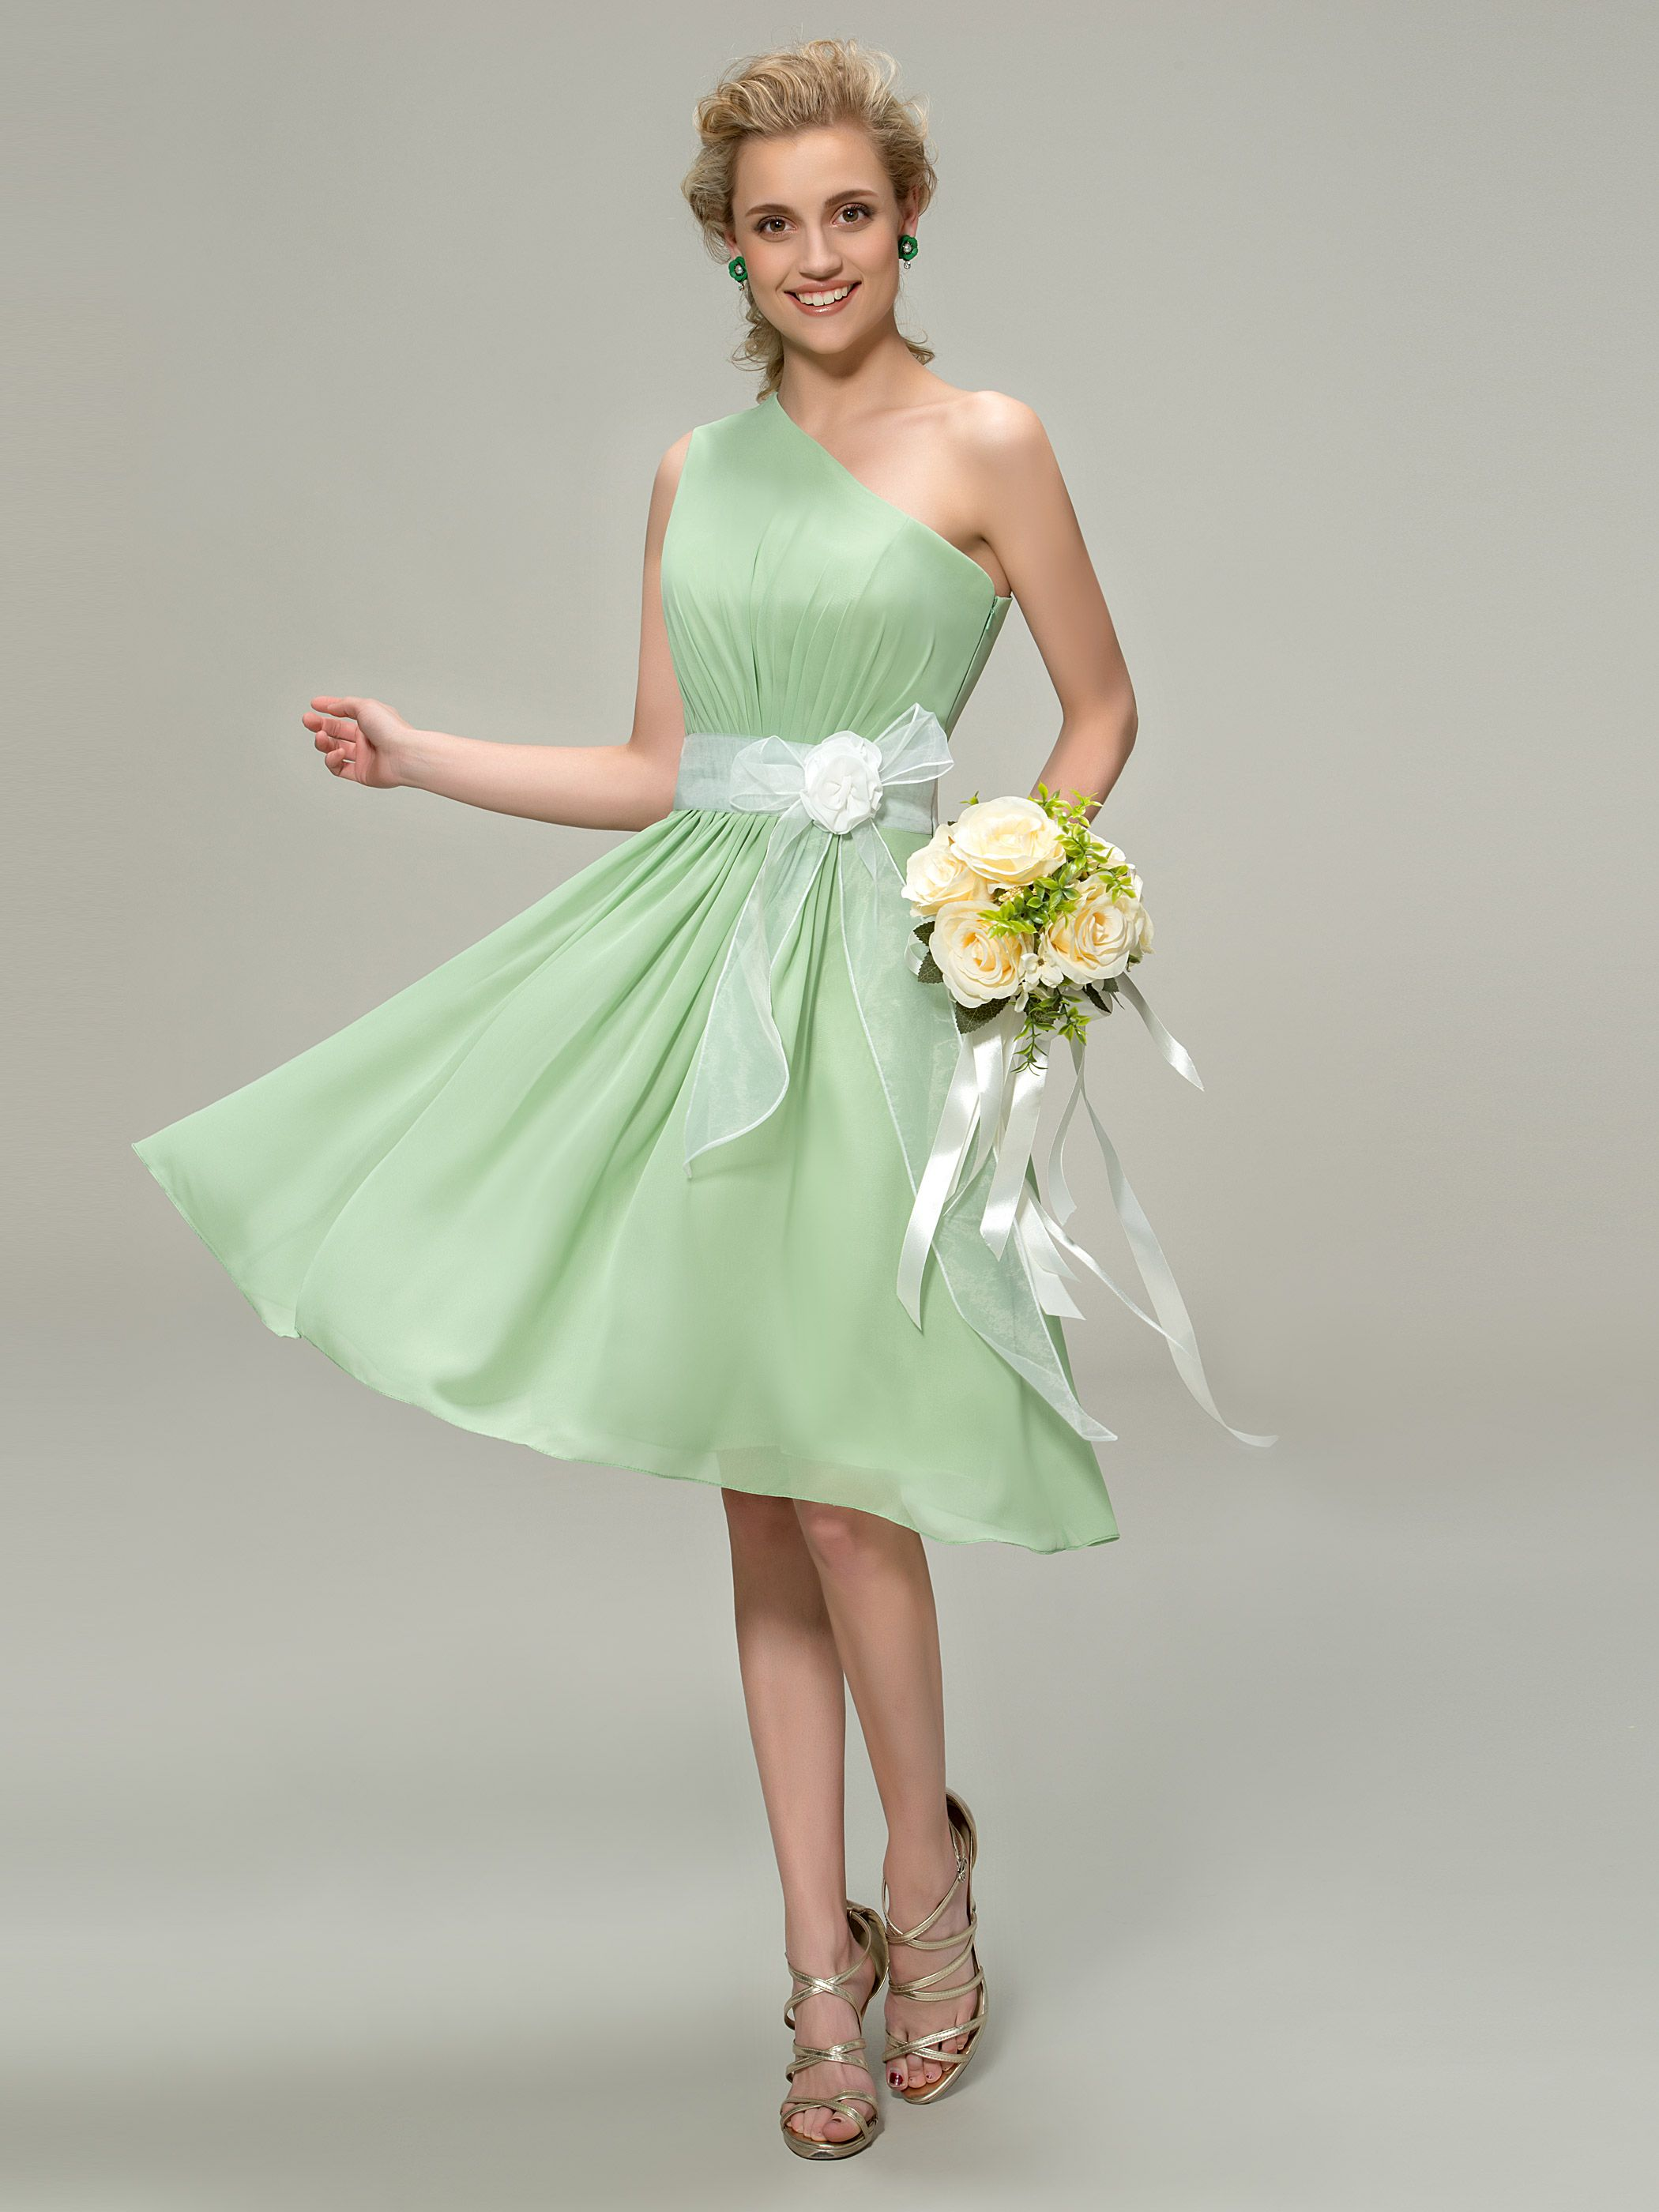 Green dress one shoulder  modabridal SUPPLIES Tailor made Wedding Party Pear Glamorous